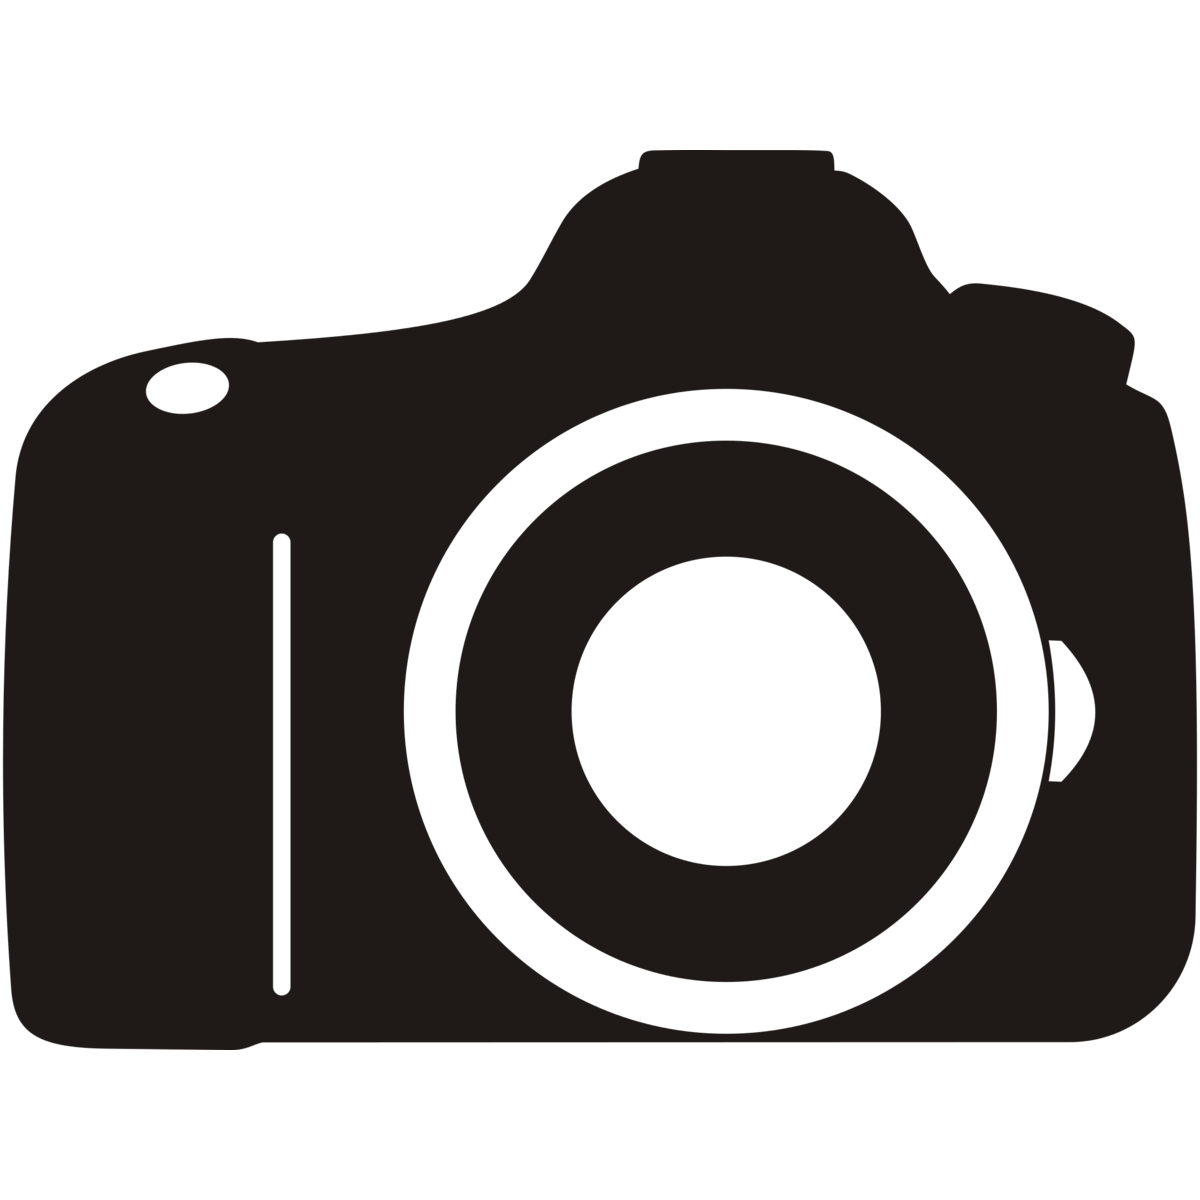 12 Camera Logo.png Icons Images